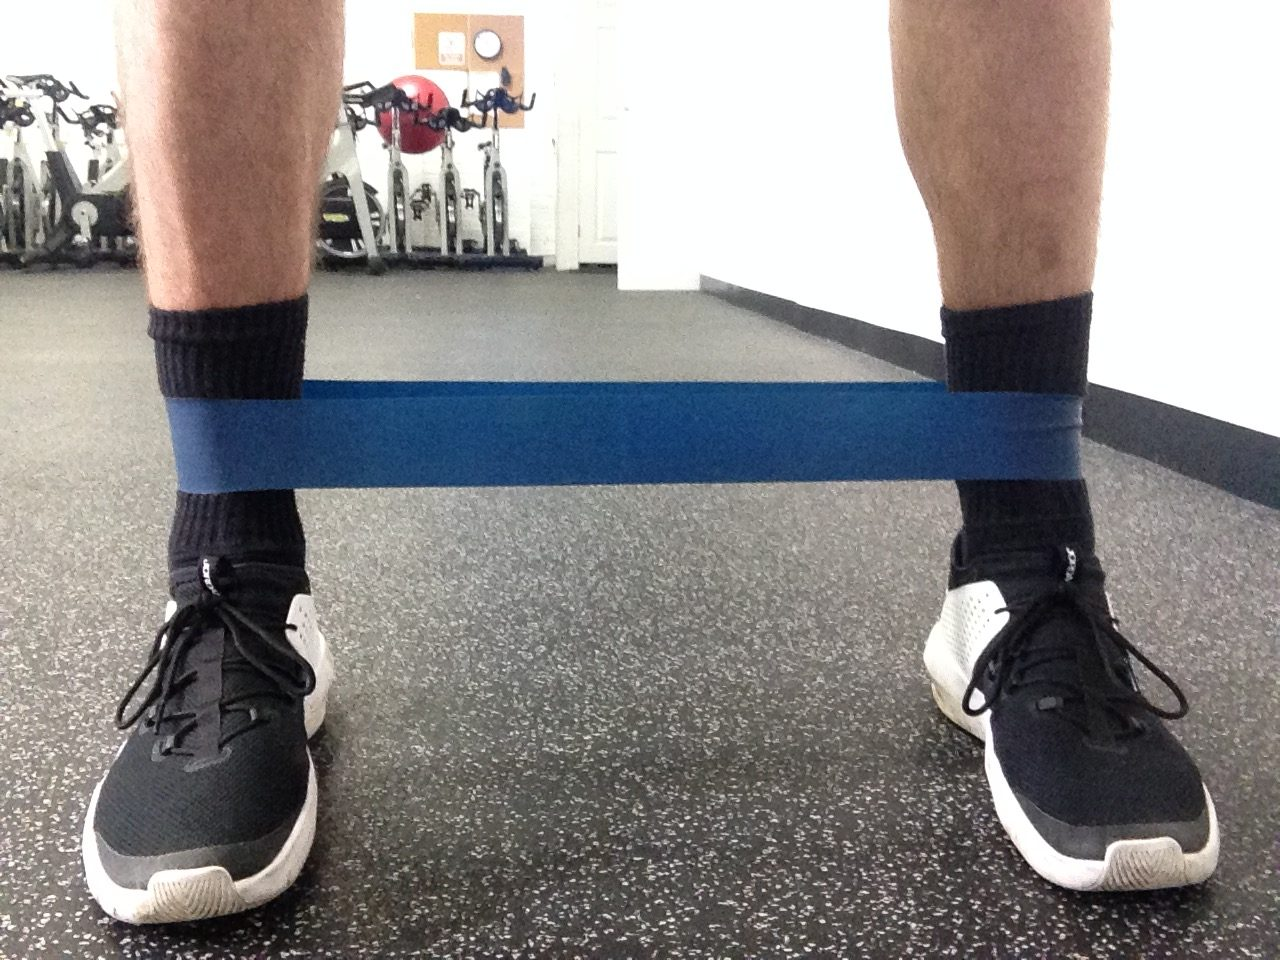 Gluteus minimus and medius exercises to strengthen your knees